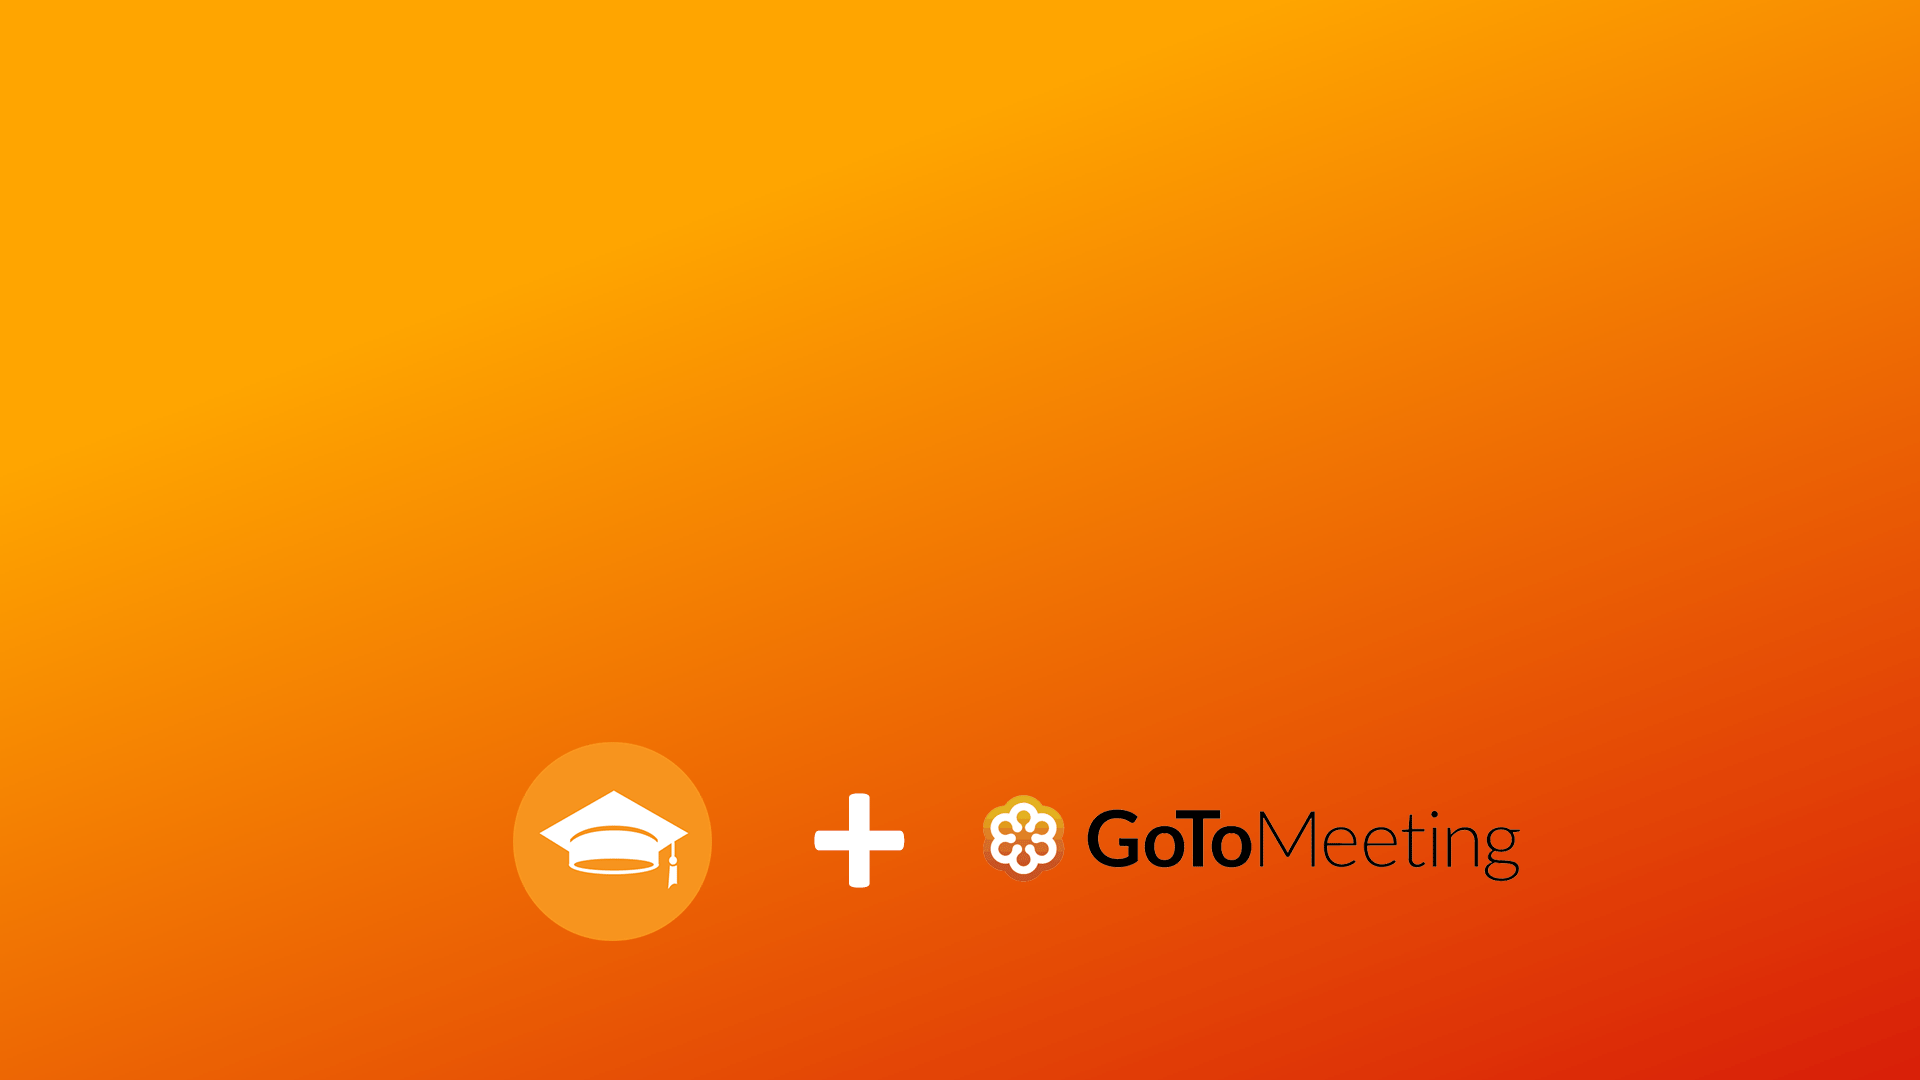 Moodle GoTo Meeting